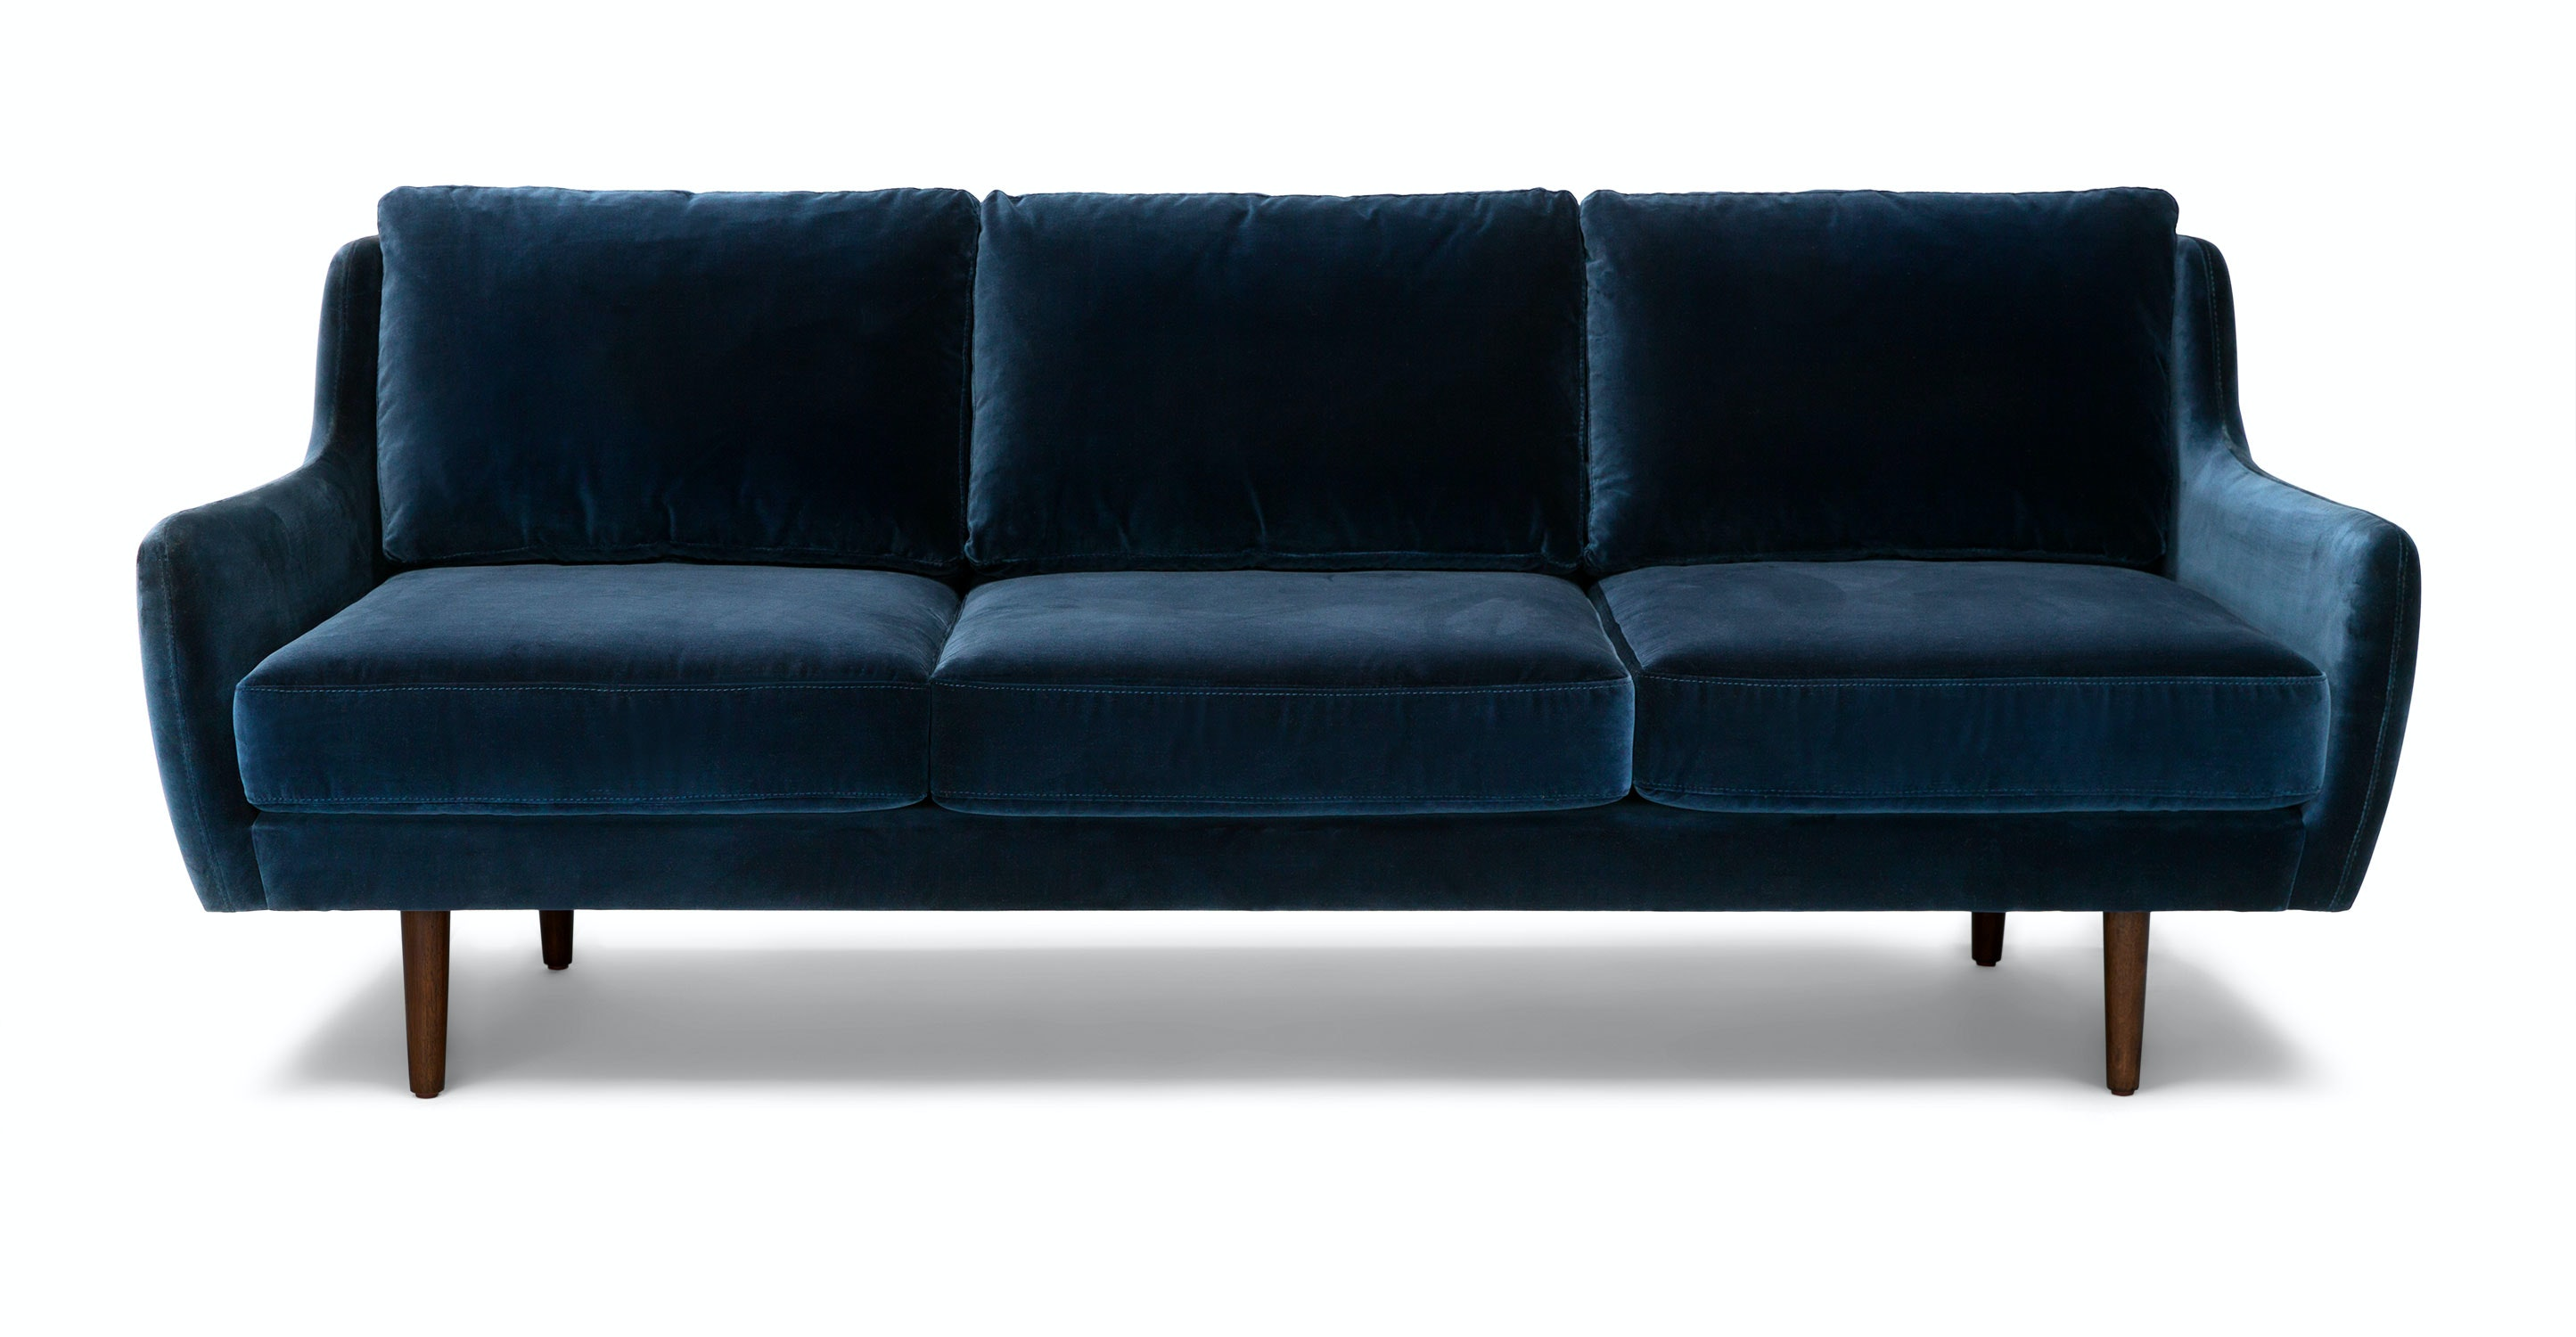 Matrix Cascadia Blue Sofa Sofas Article Modern Mid Century And Scandinavian Furniture